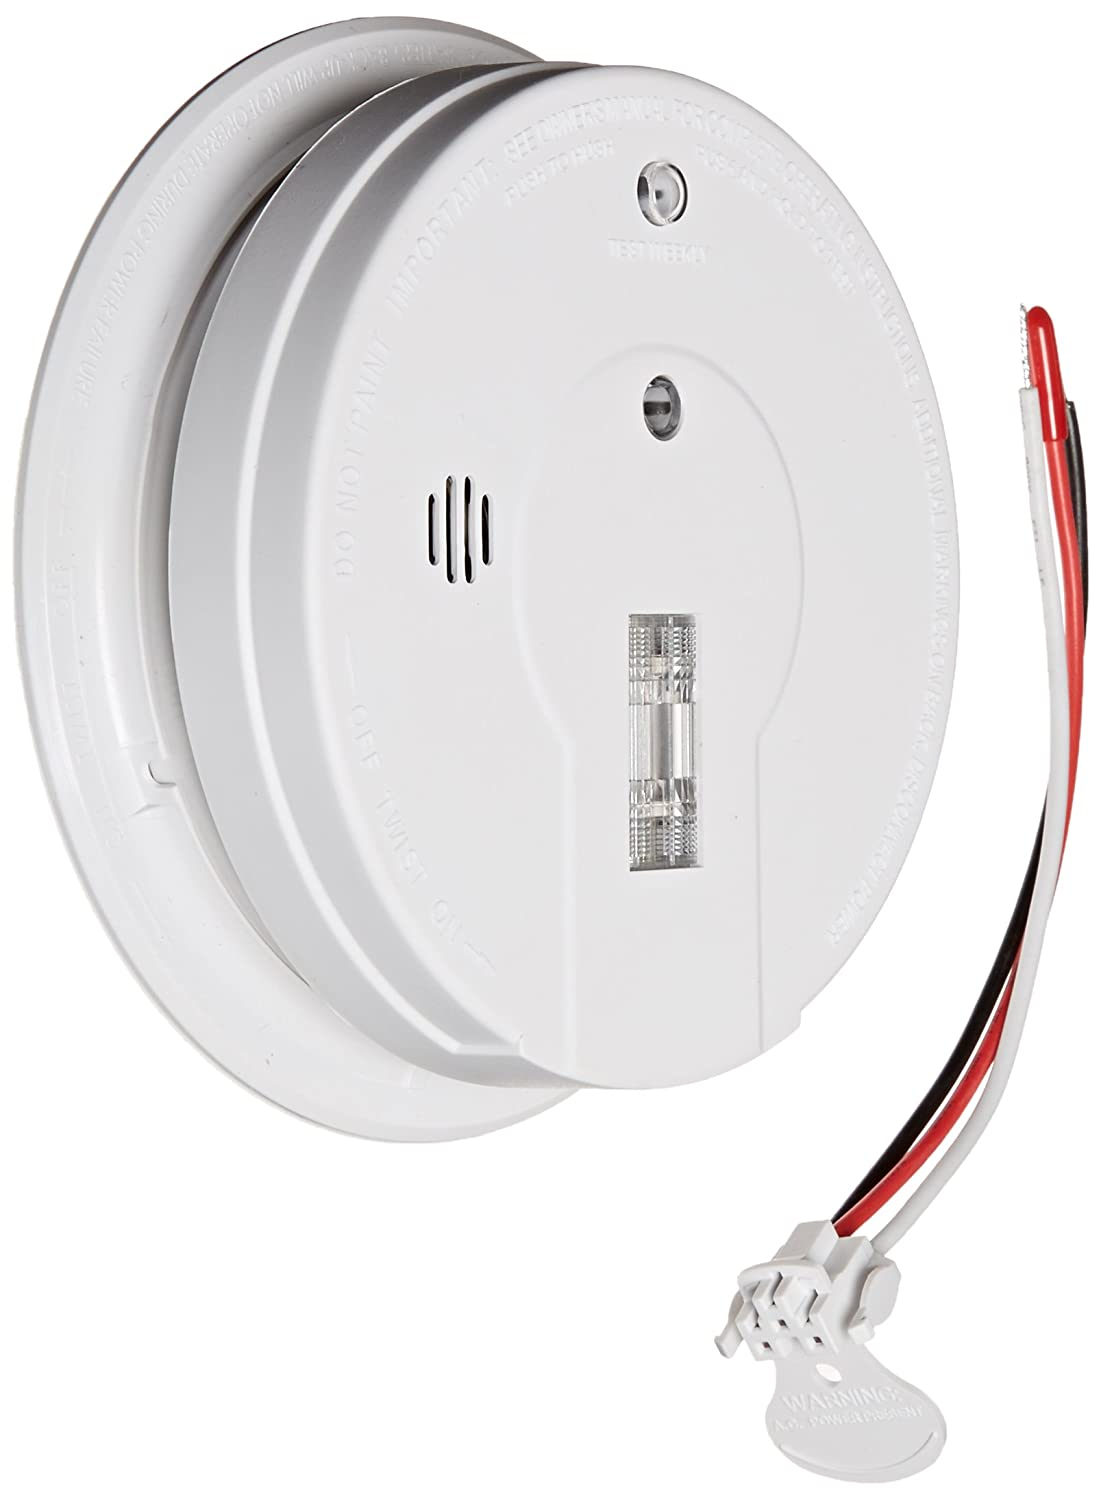 Kidde 408 21006379 Firex I12080 Hardwire Smoke Alarm With Exit Light Wiring Alarms Together And Battery Backup Industrial Scientific